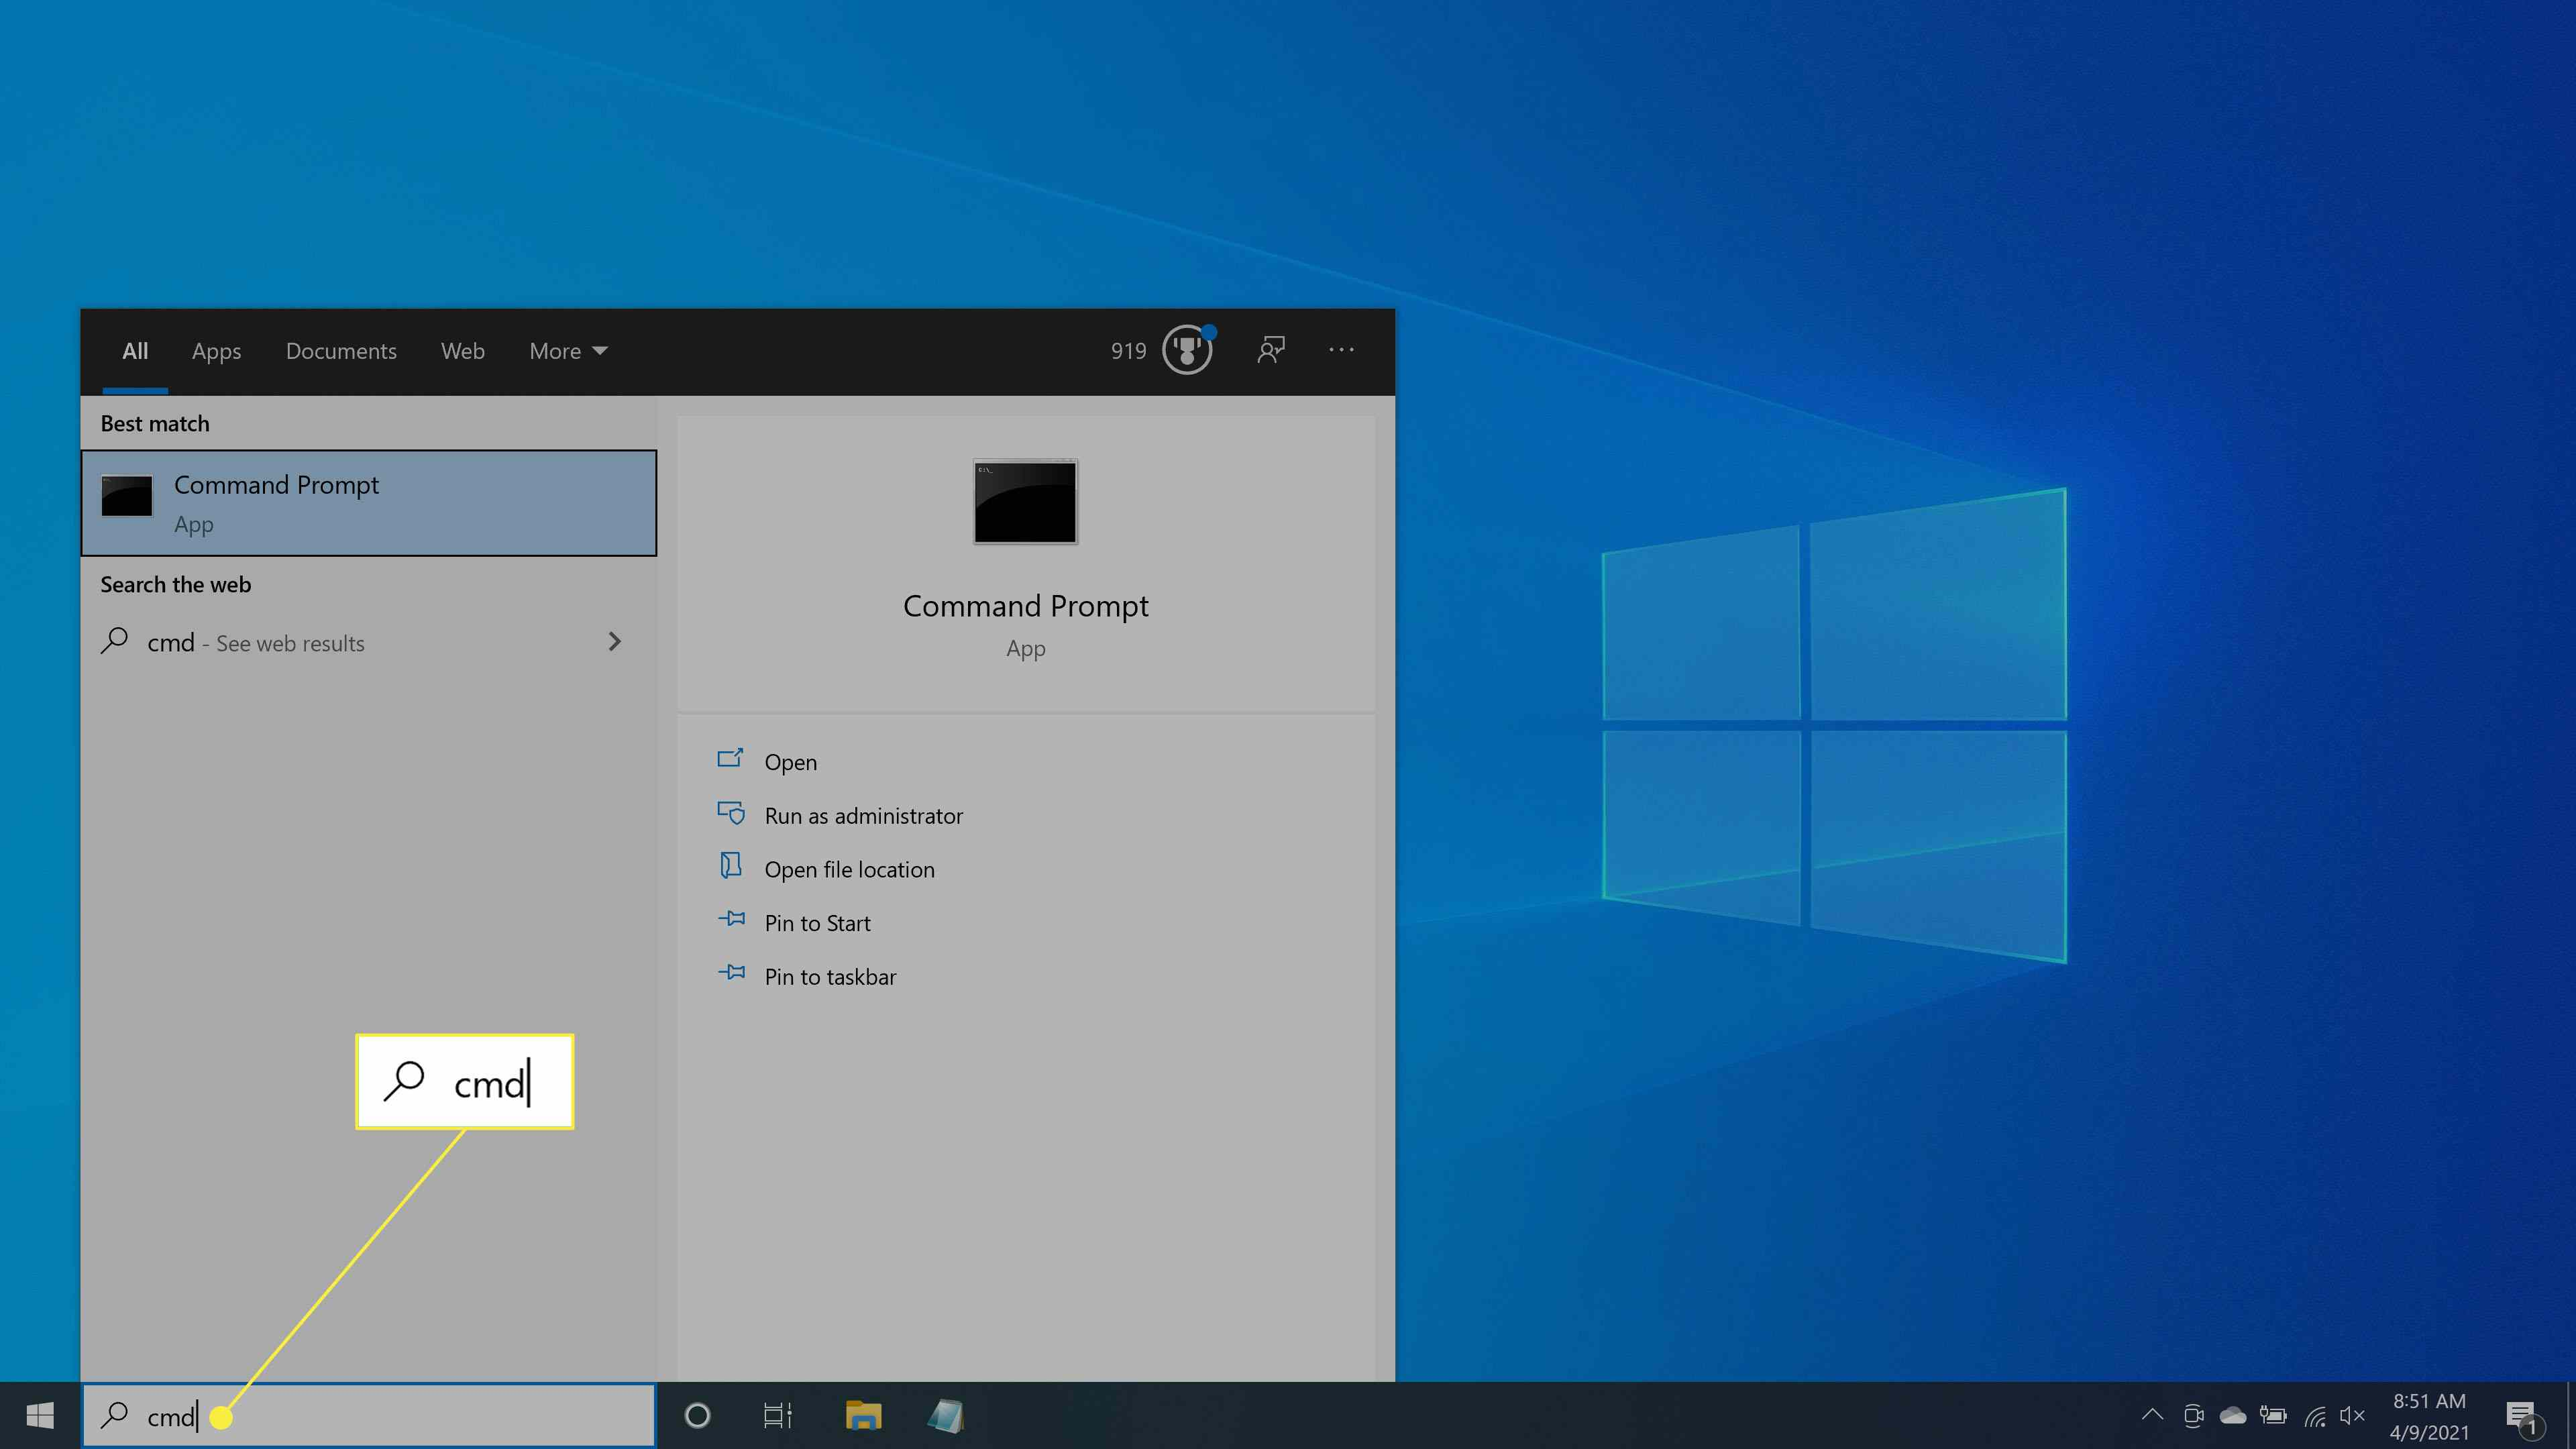 Searching for the Command Prompt in Windows 10.